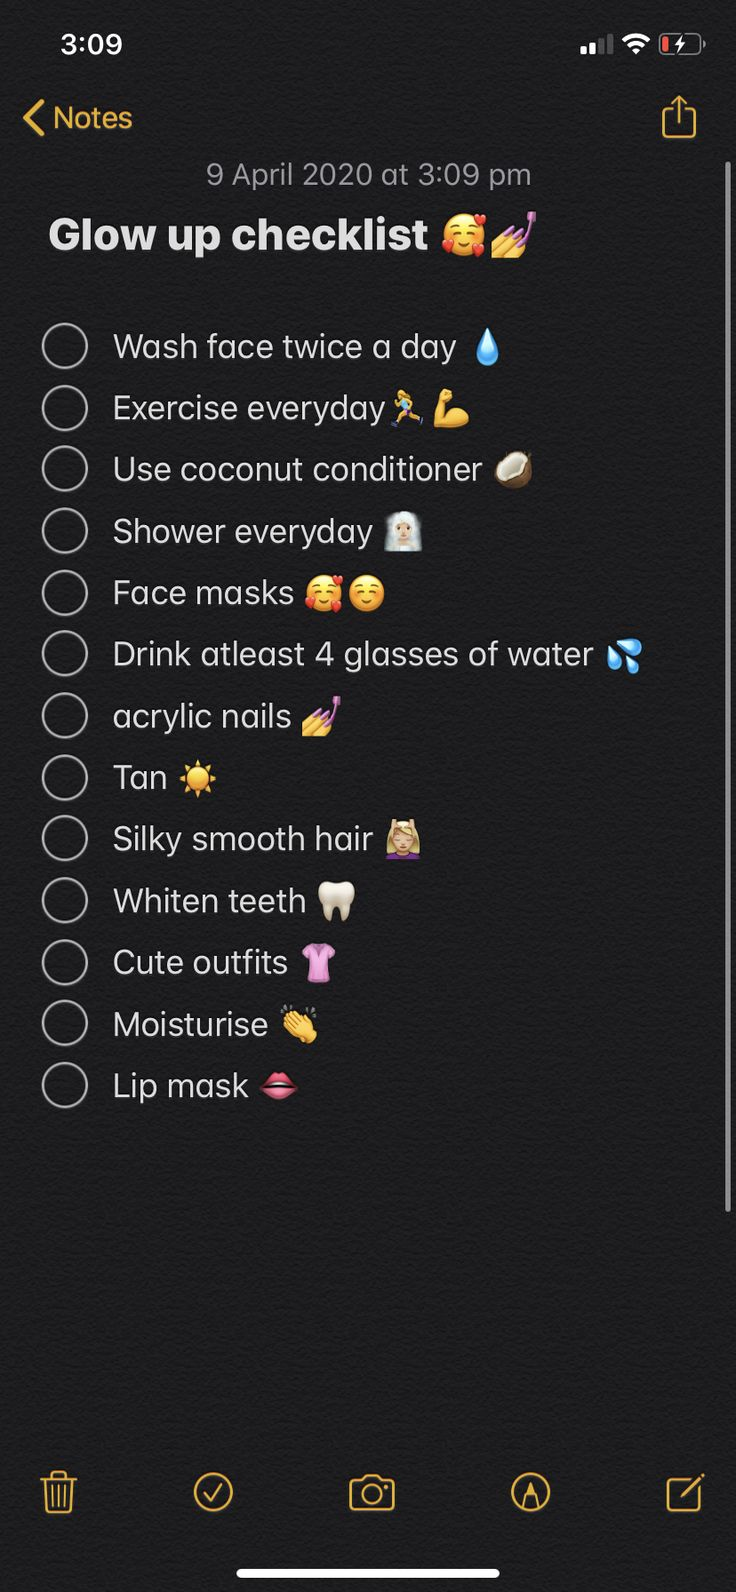 Glow up checklist glow up tips school routine for teens